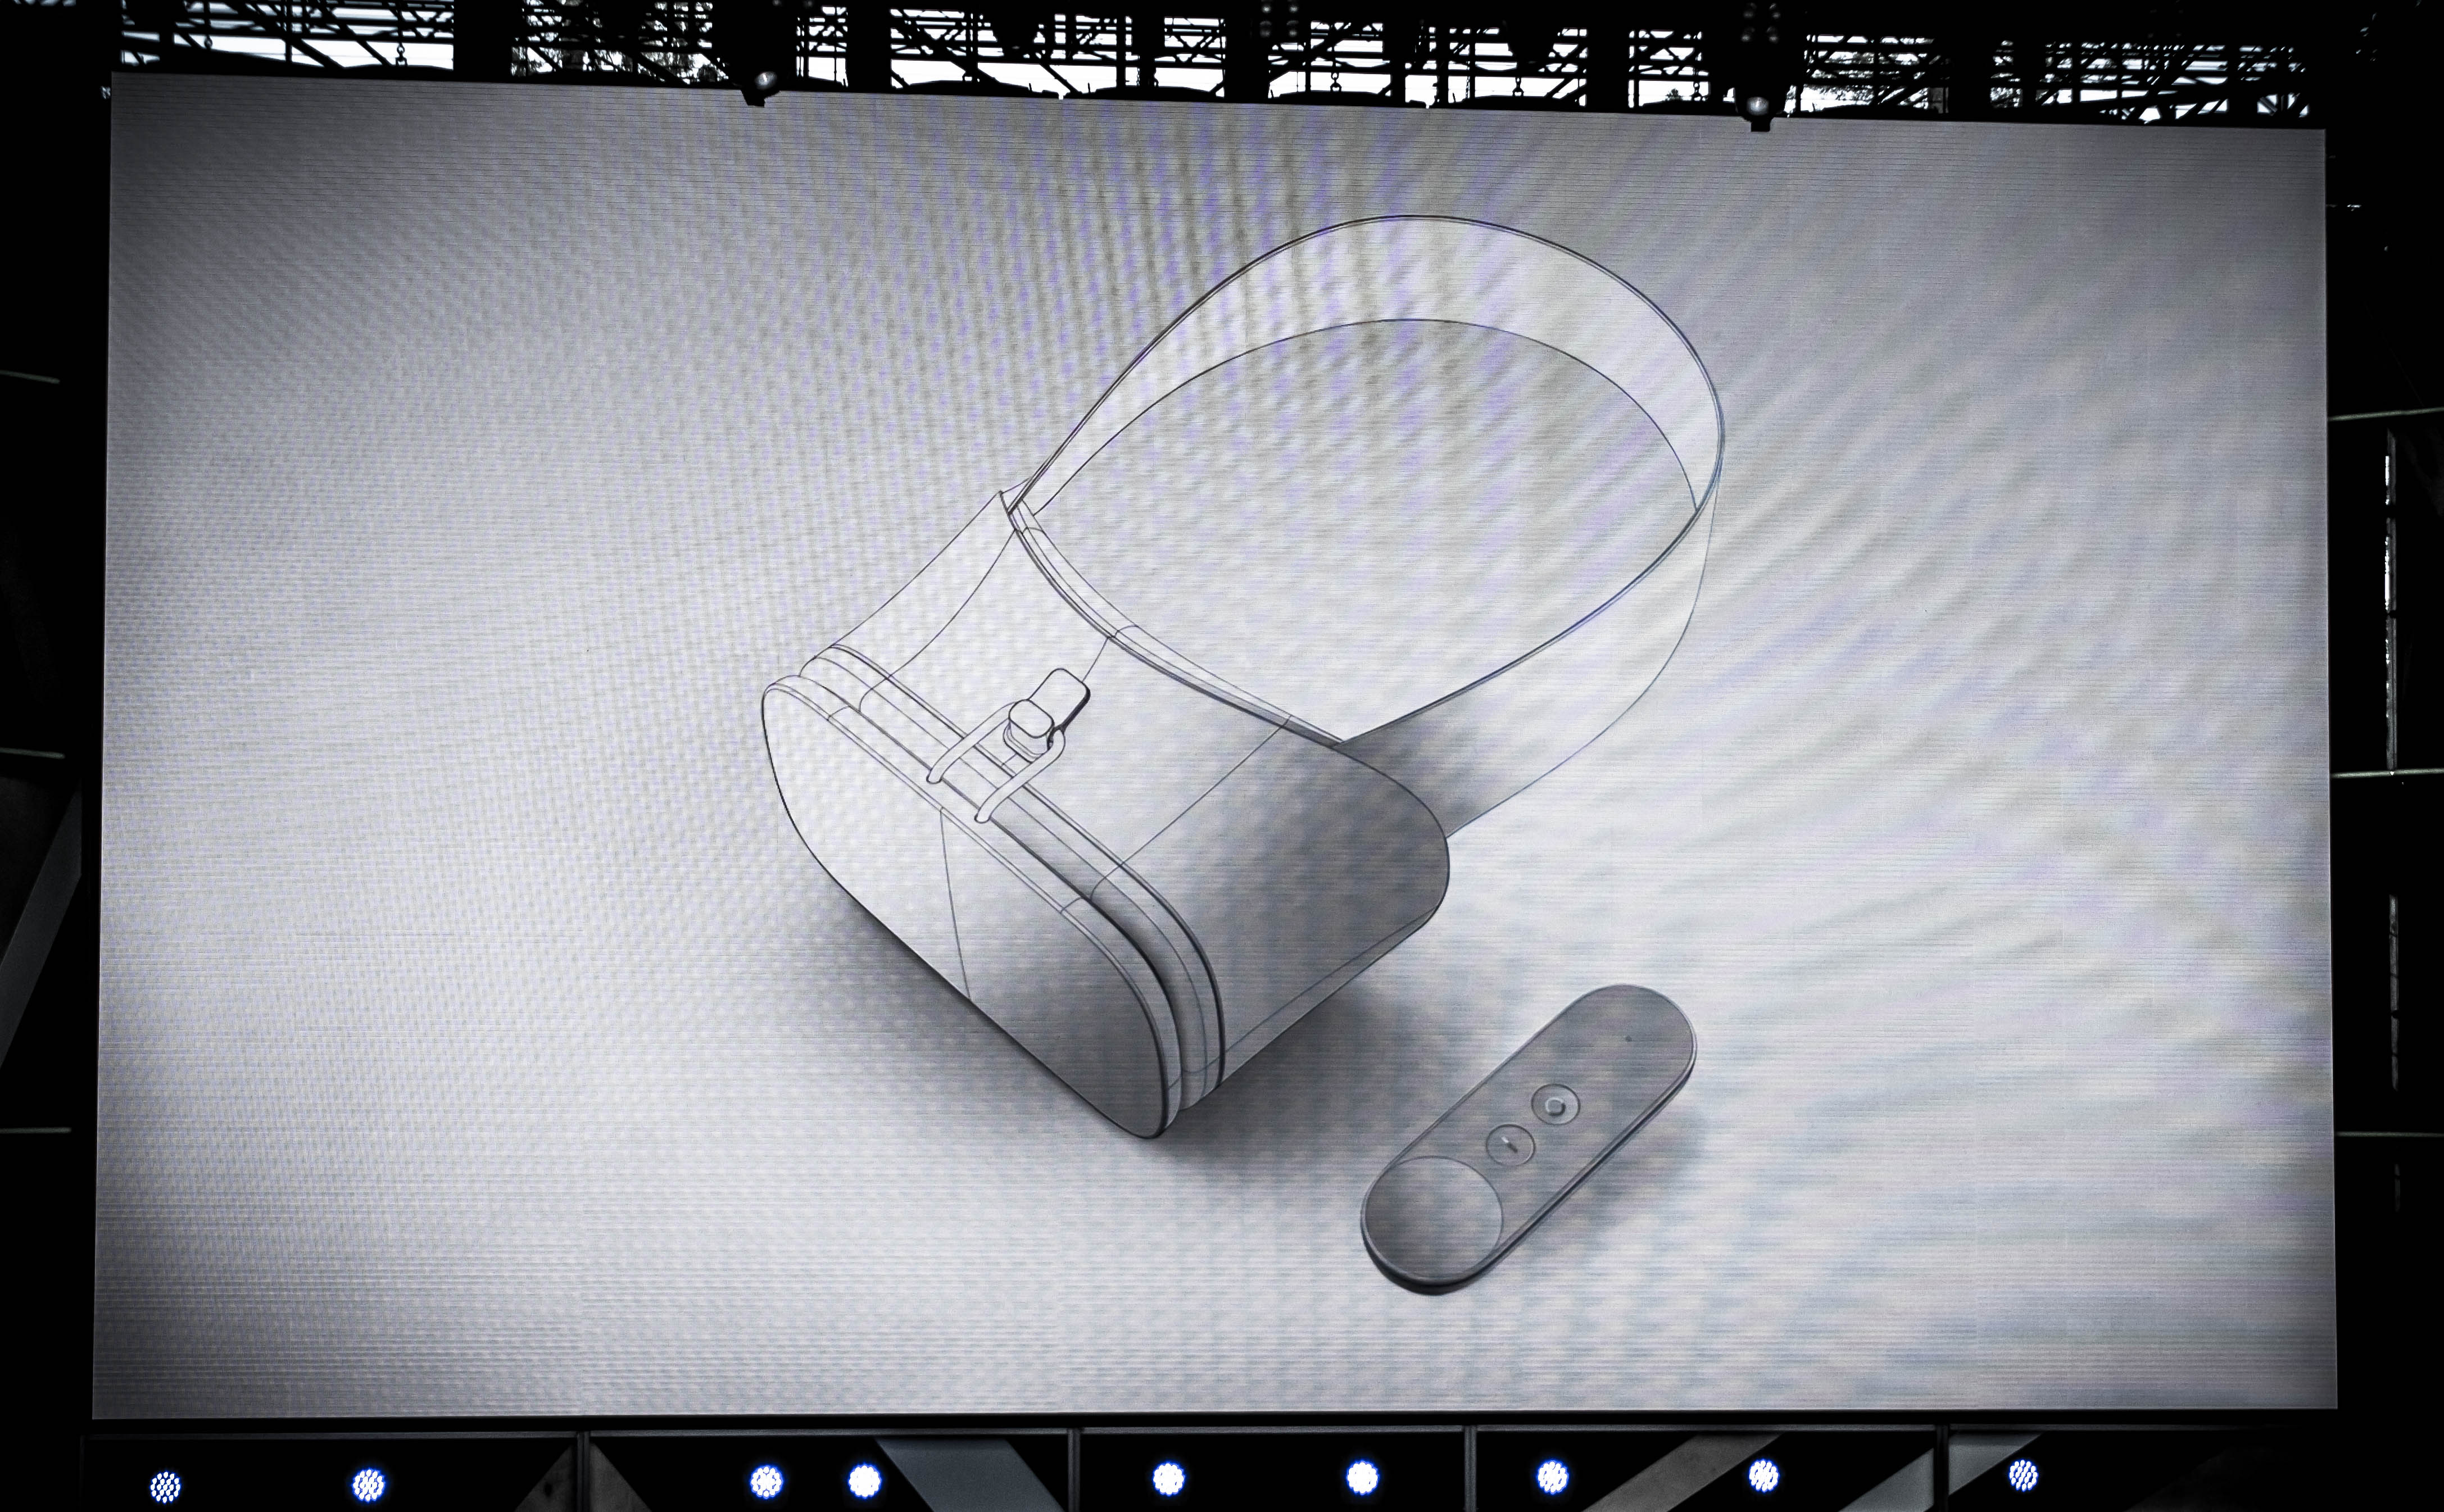 An illustration of a virtual reality headset produced on Google's Daydream platform shown on stage at the company's I/O developer conference on May 18, 2016 in Mountain View, Calif.